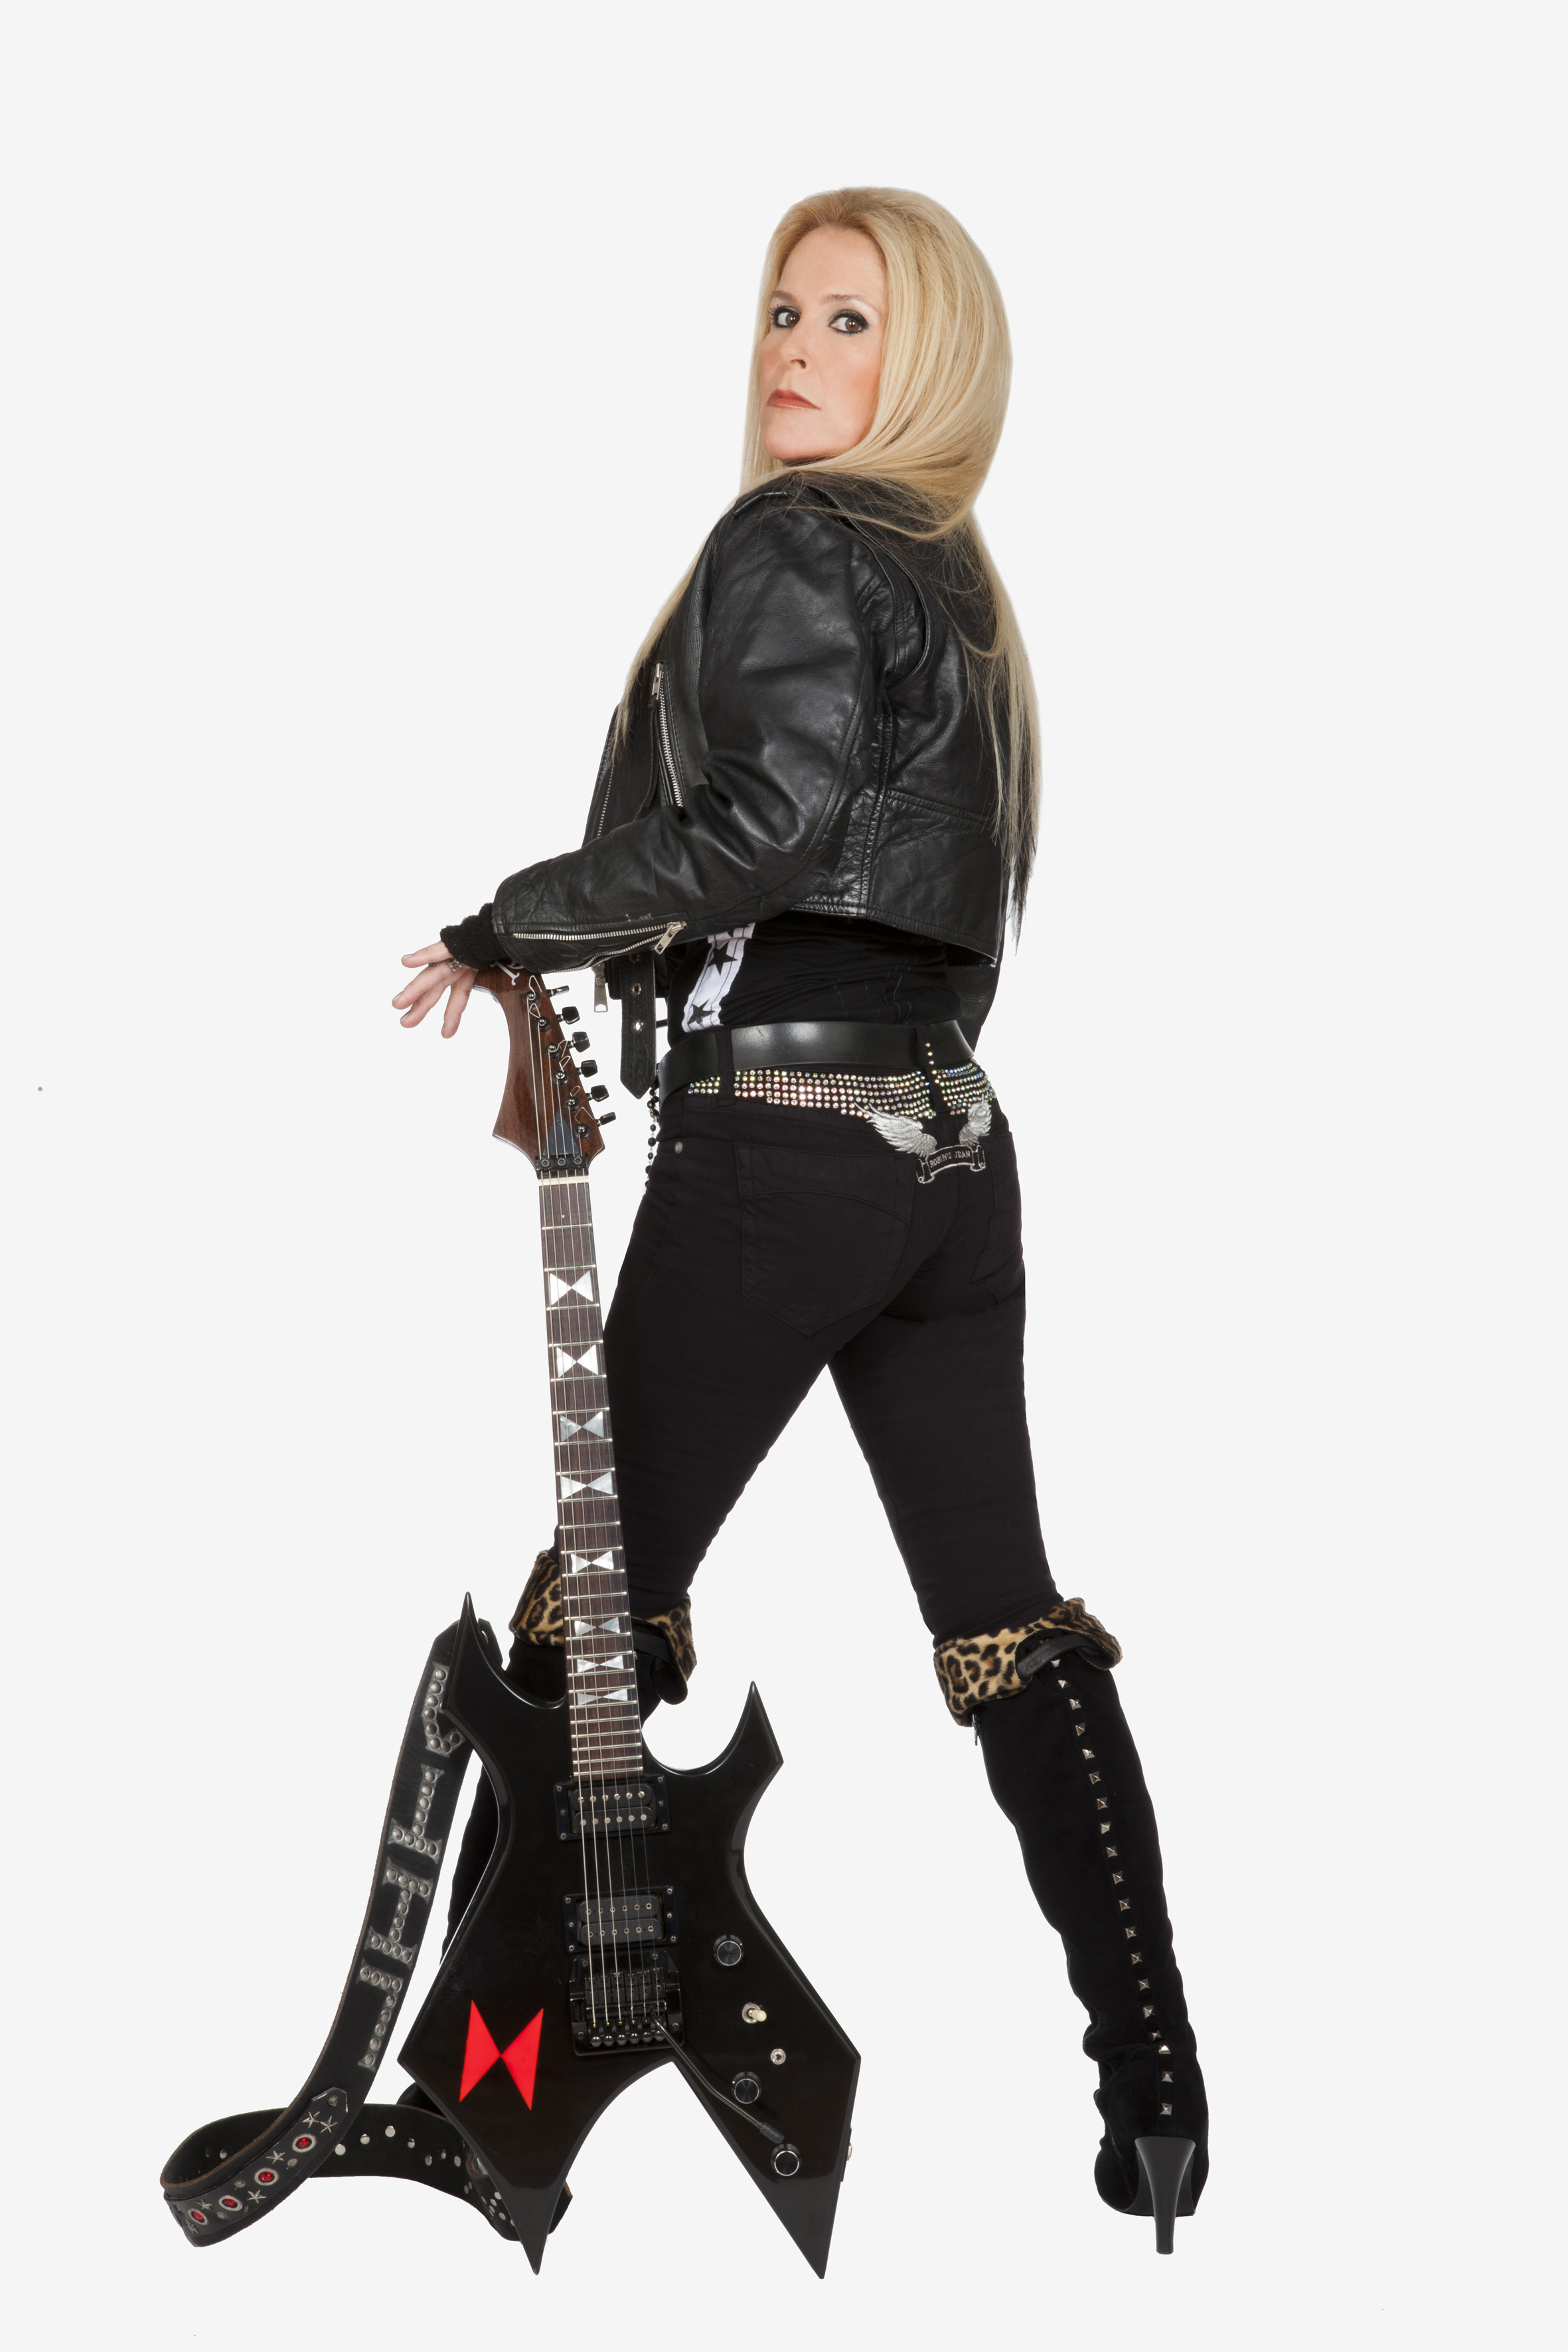 Living Like A Runaway- An Interview With Lita Ford On ... Taylor Momsen Interview